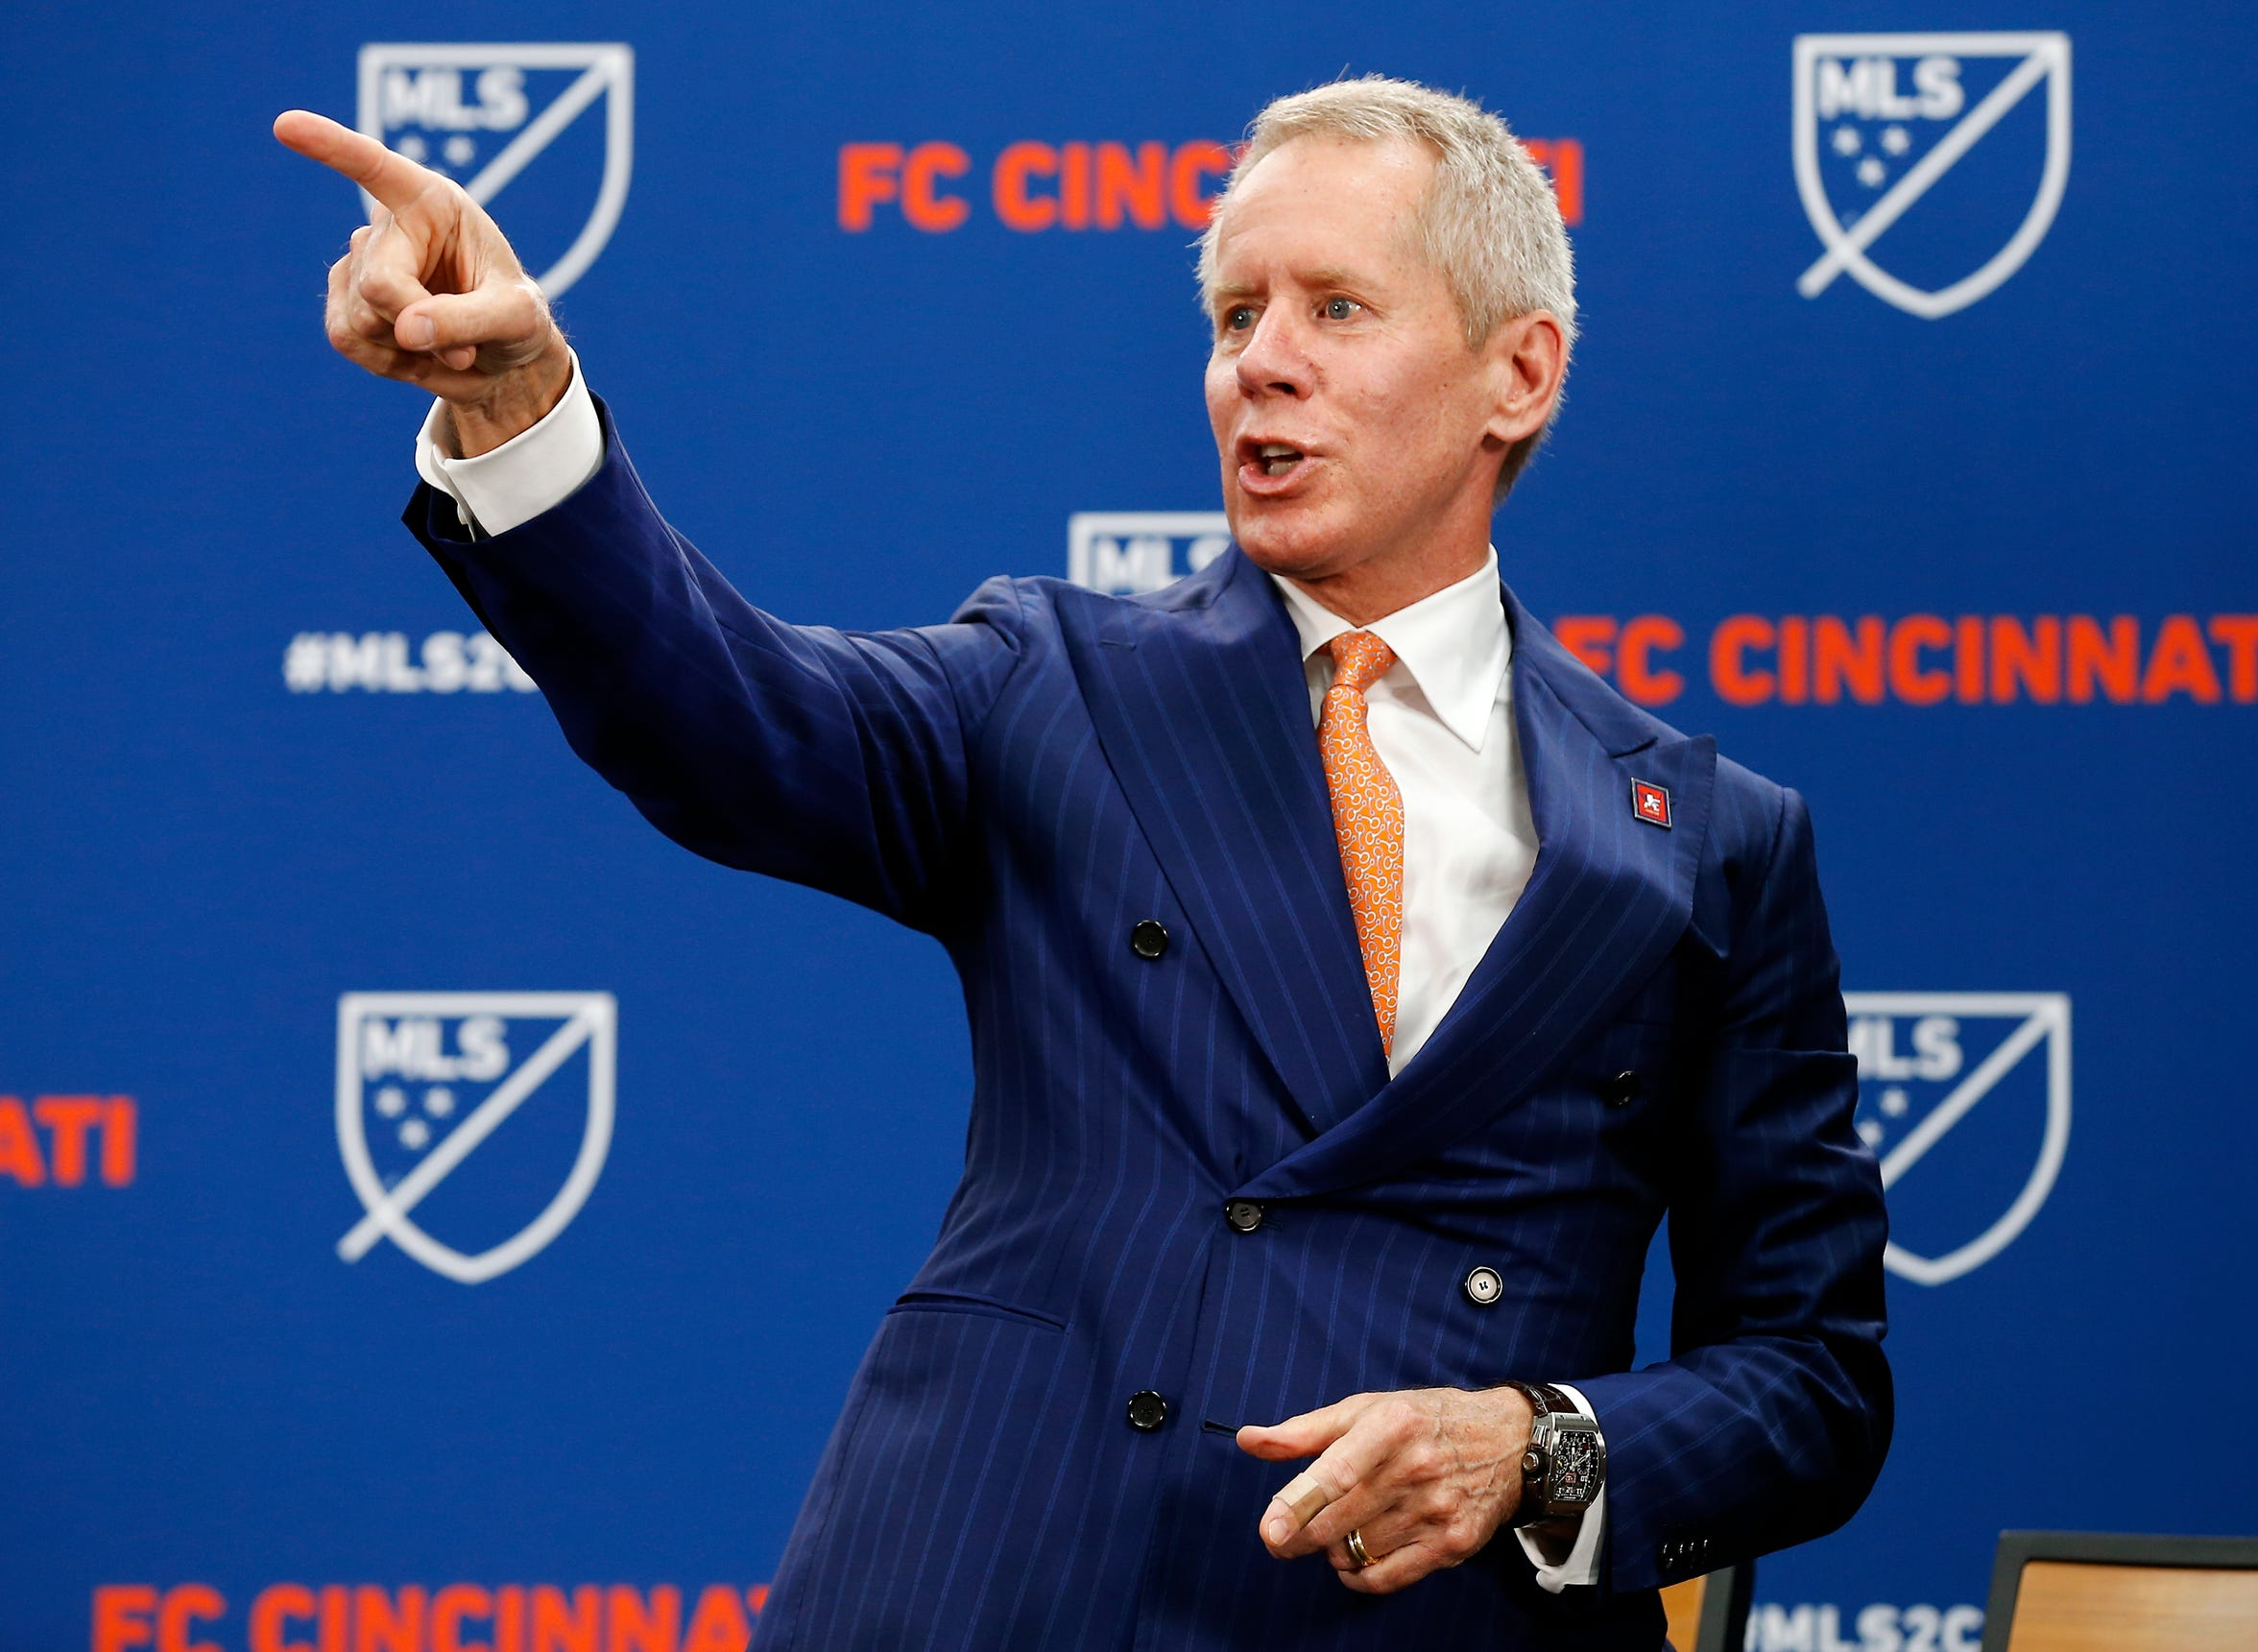 Lindner thanks the crowd as FC Cincinnati was announced as an MLS expansion team in May.